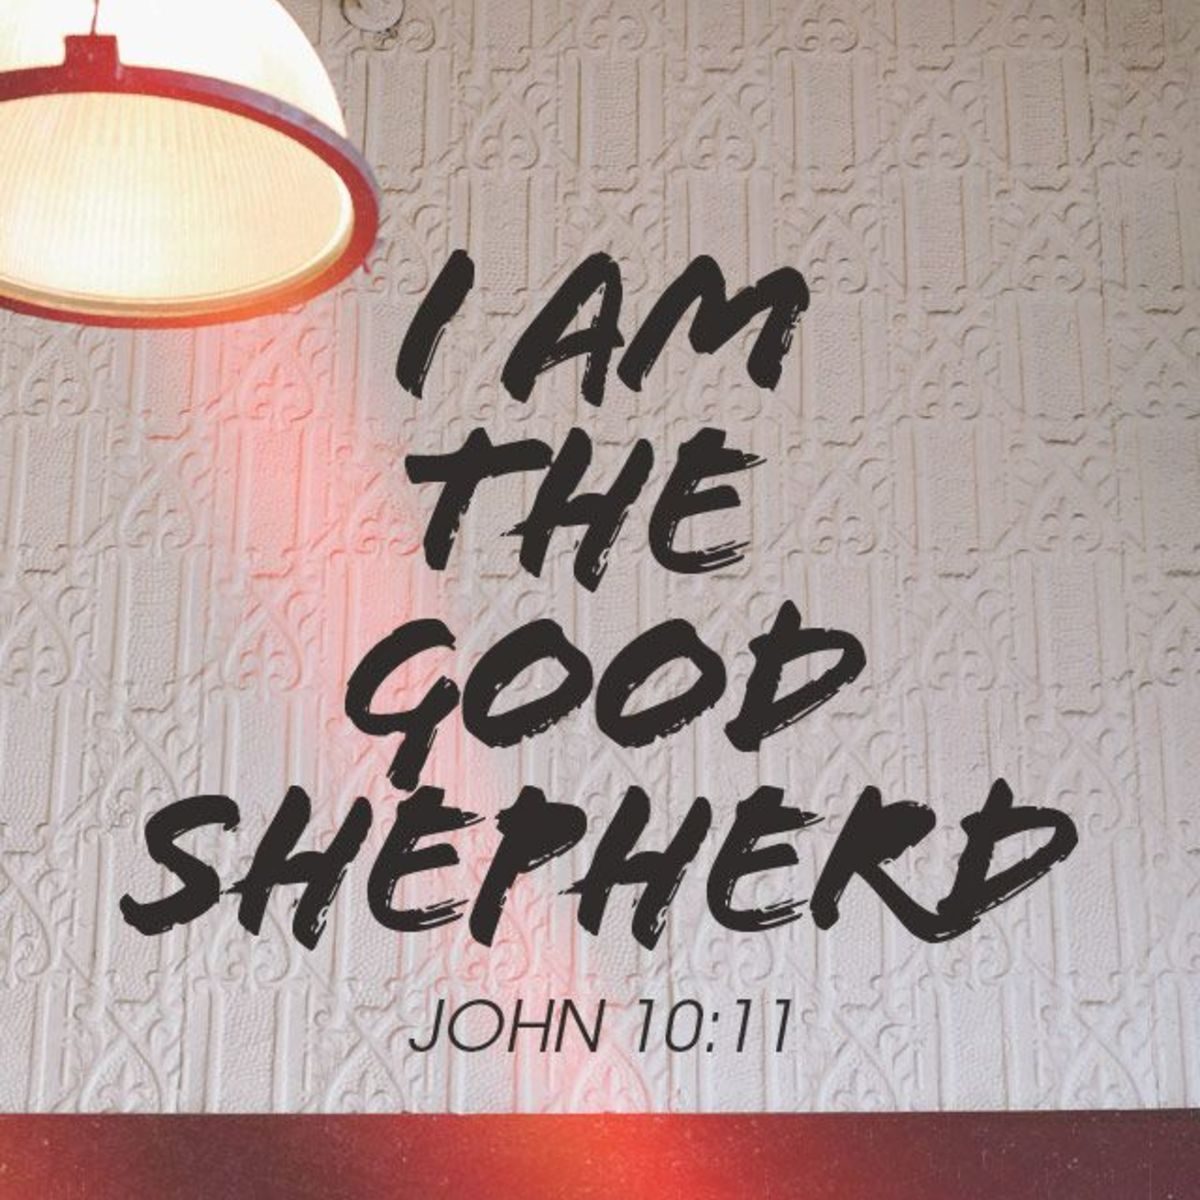 Think about it. What is the job description of a shepherd